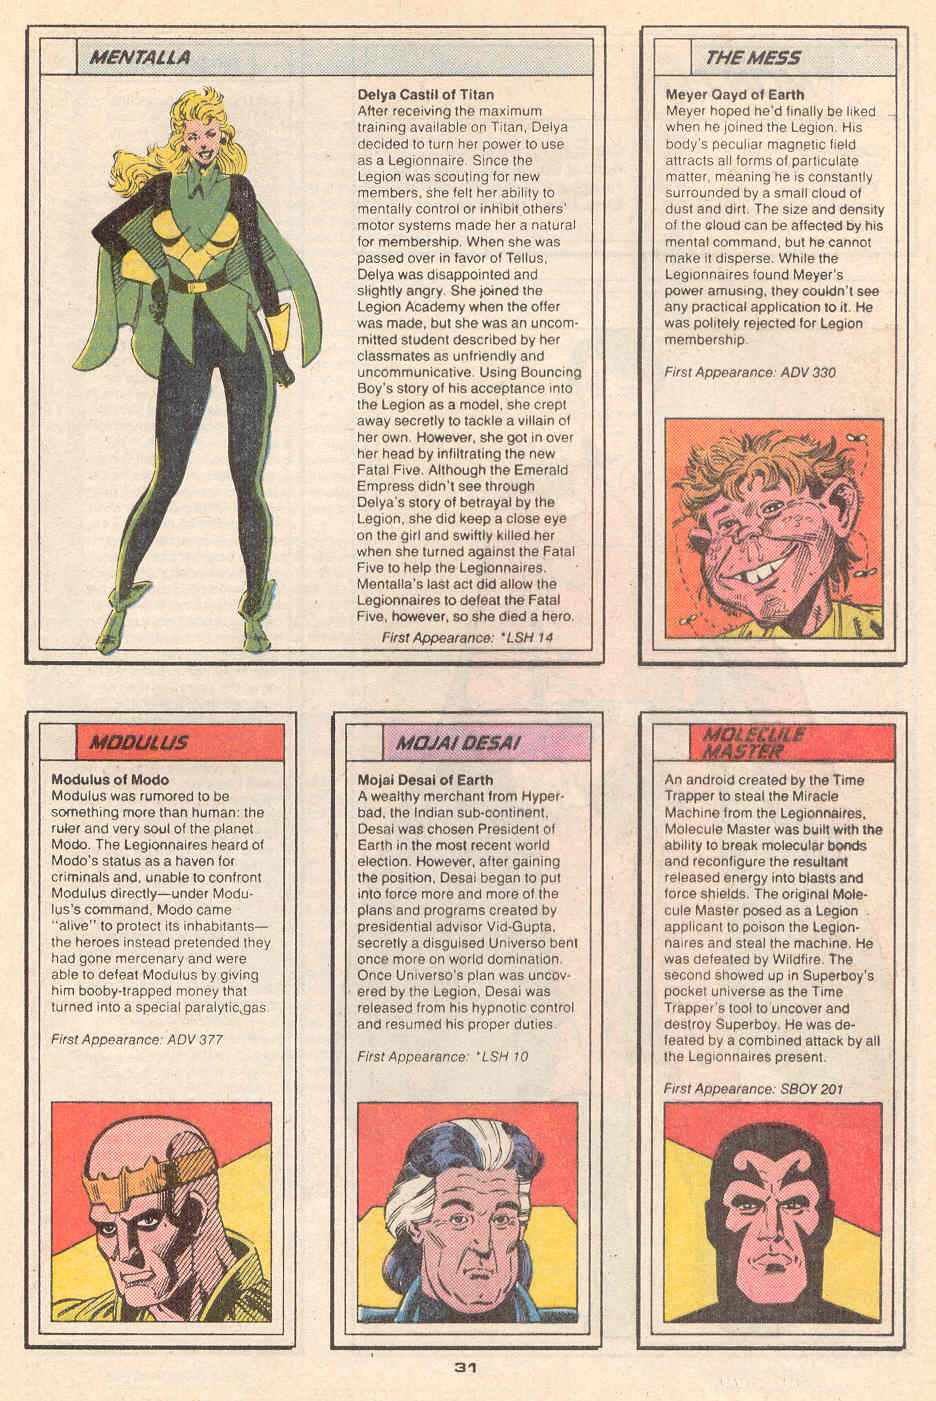 Mentalla, The Mess, Modulus, Mojai Desai, and Molecule Master by Grant Miehm and Jim Sanders III - Who's Who in the Legion of Super-Heroes #4